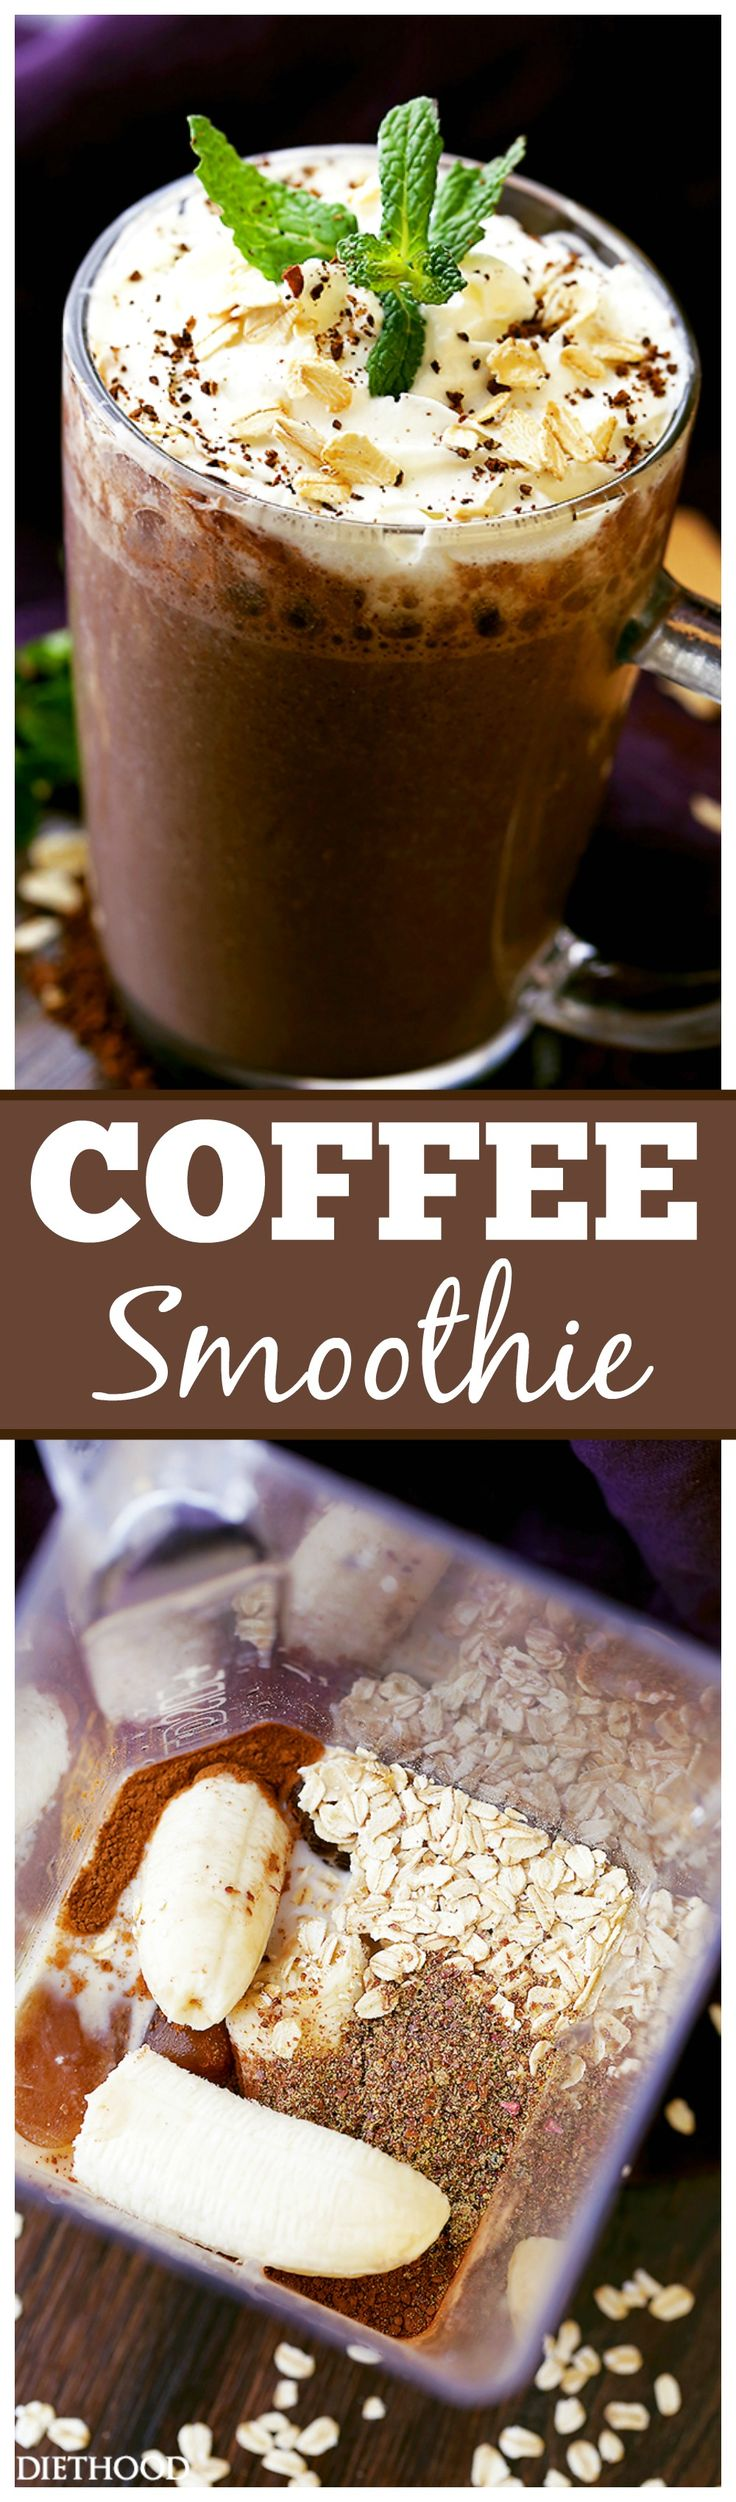 Coffee Smoothie – The perfect way to start your morning with coffee, oats, flaxseeds and bananas, all in one! Combining our two morning loves, coffees and smoothies, for people on the g